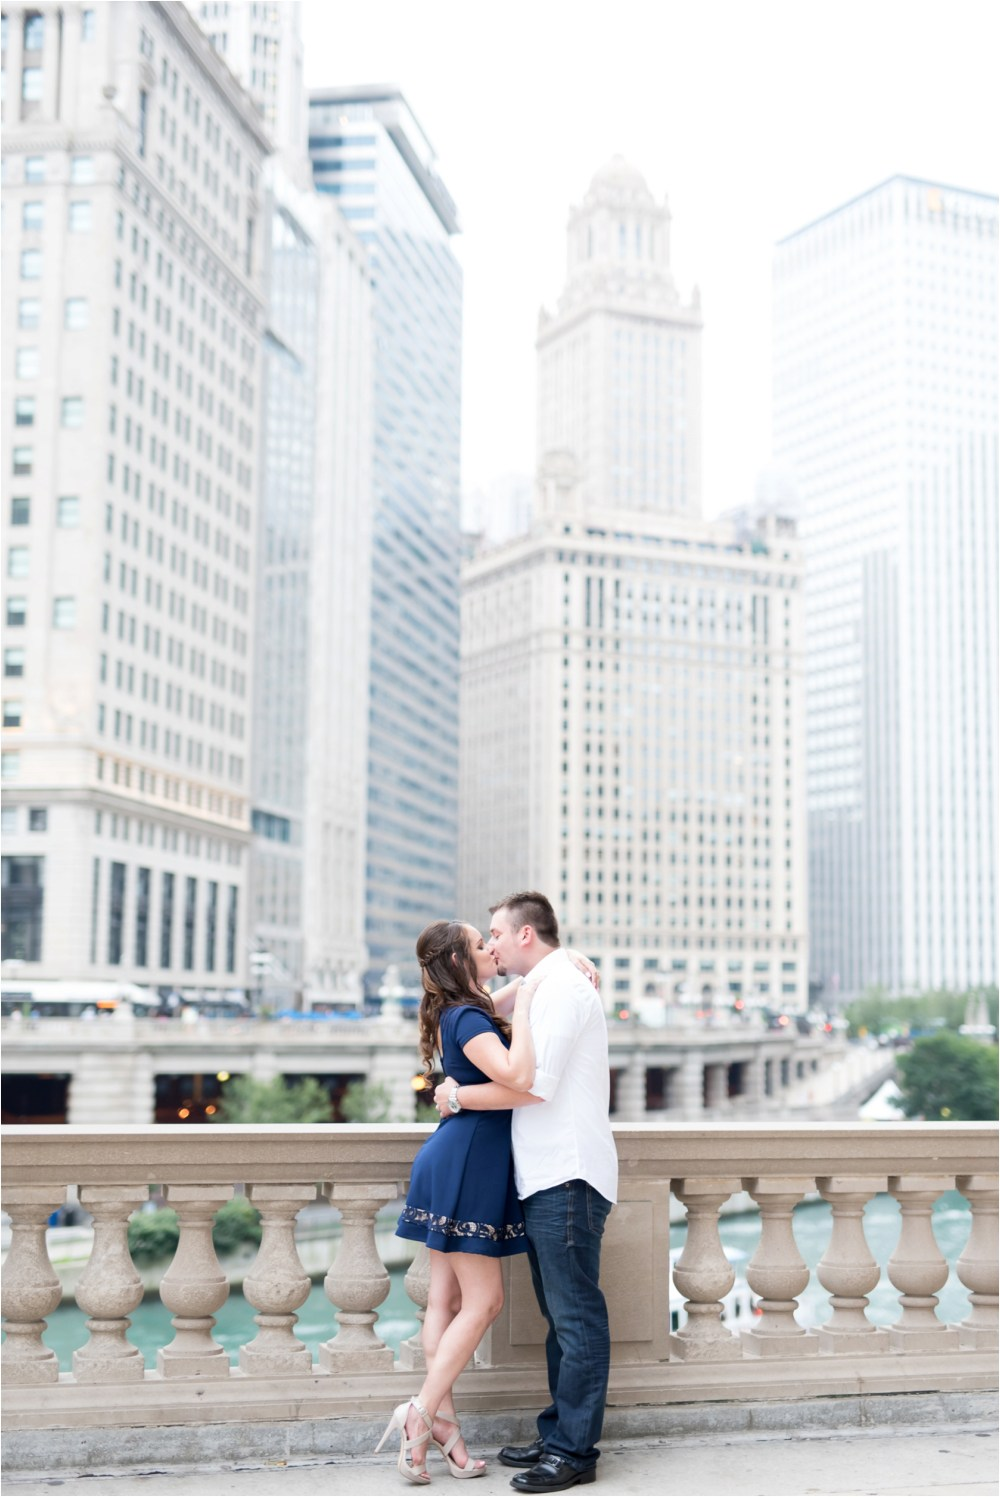 chicago-ilinois-michigna-ave-city-downtown-engagement-photo-3.jpg